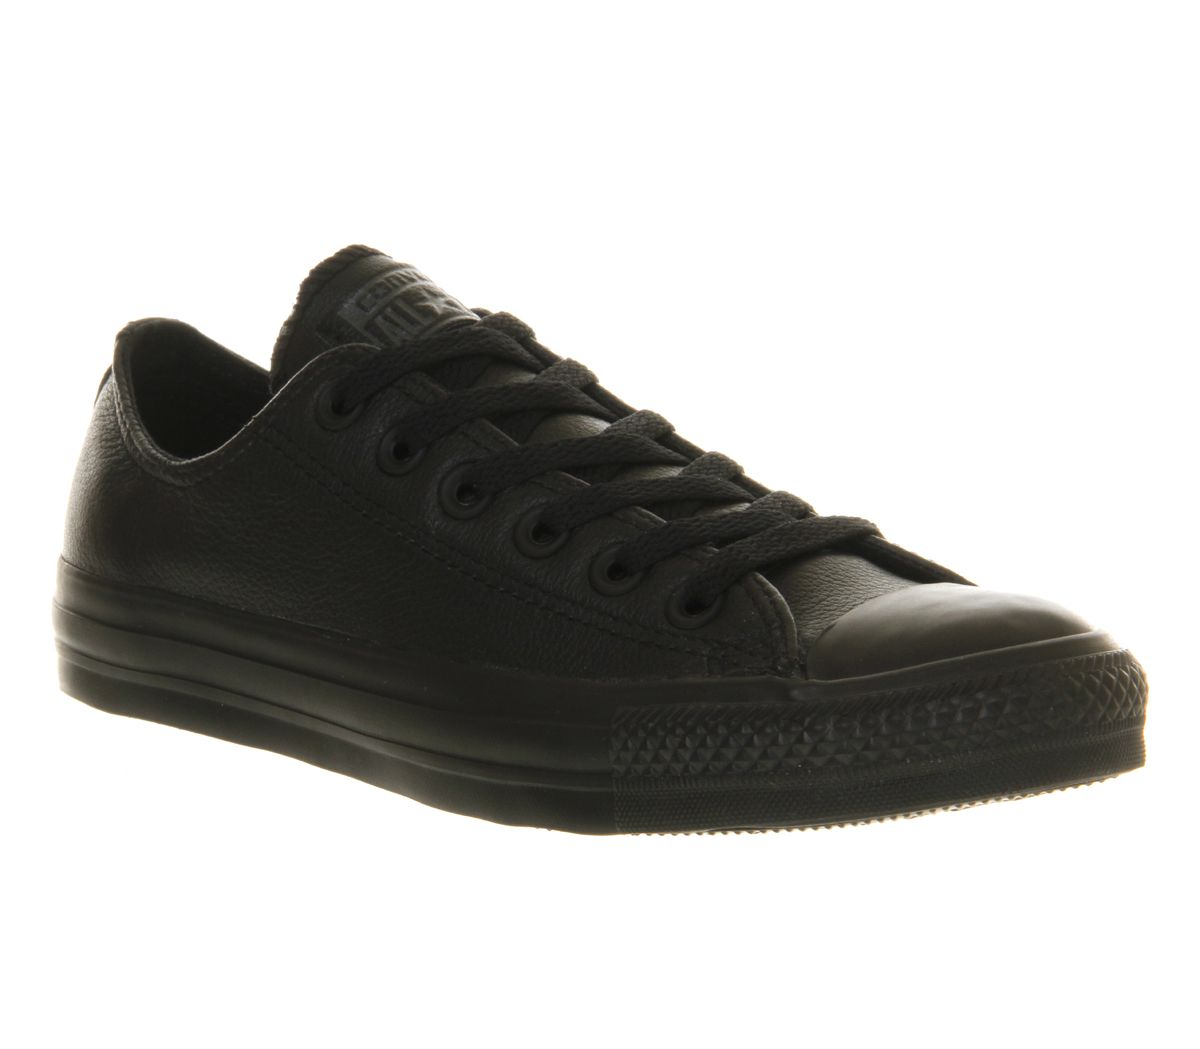 Converse All star low trainers Black